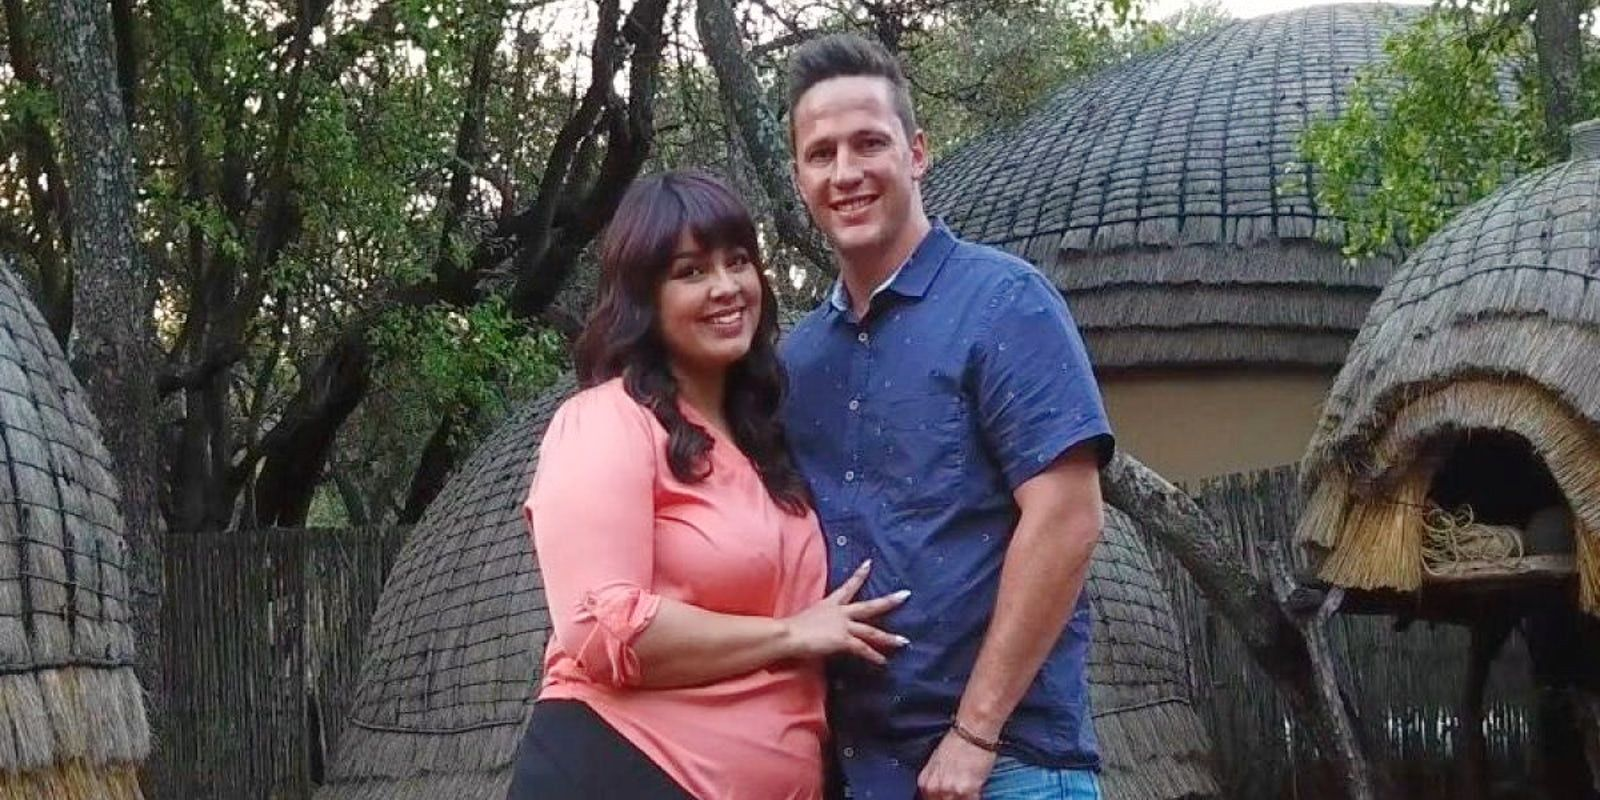 Tiffany Franco and Ronald Smith: Are the Couple Pursuing Divorce?